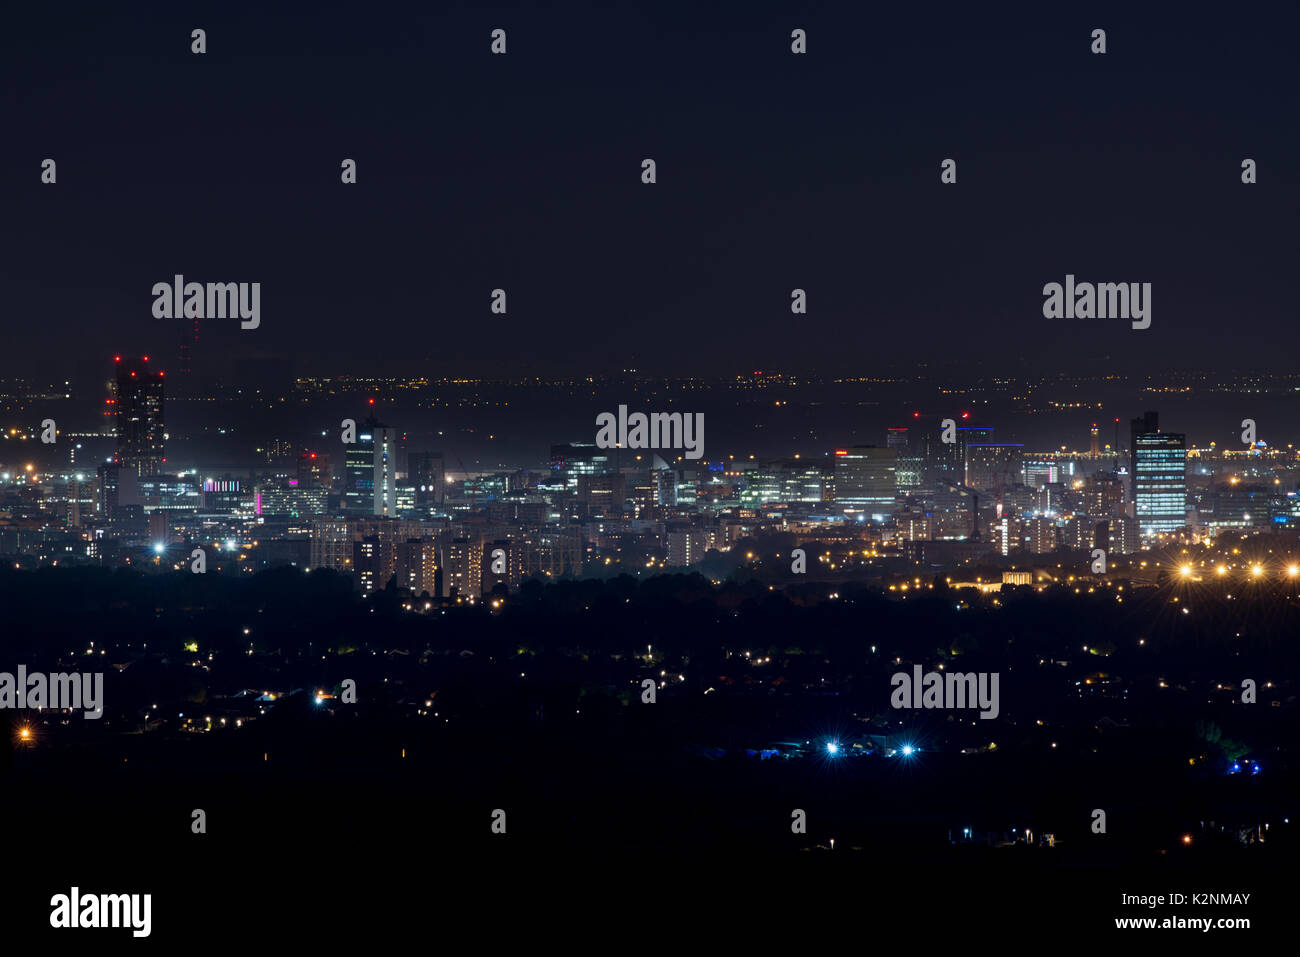 A view of Manchester City Centre taken at night from the vantage point of Hartshead Pike, Mossley, in Saddleworth, UK - Stock Image